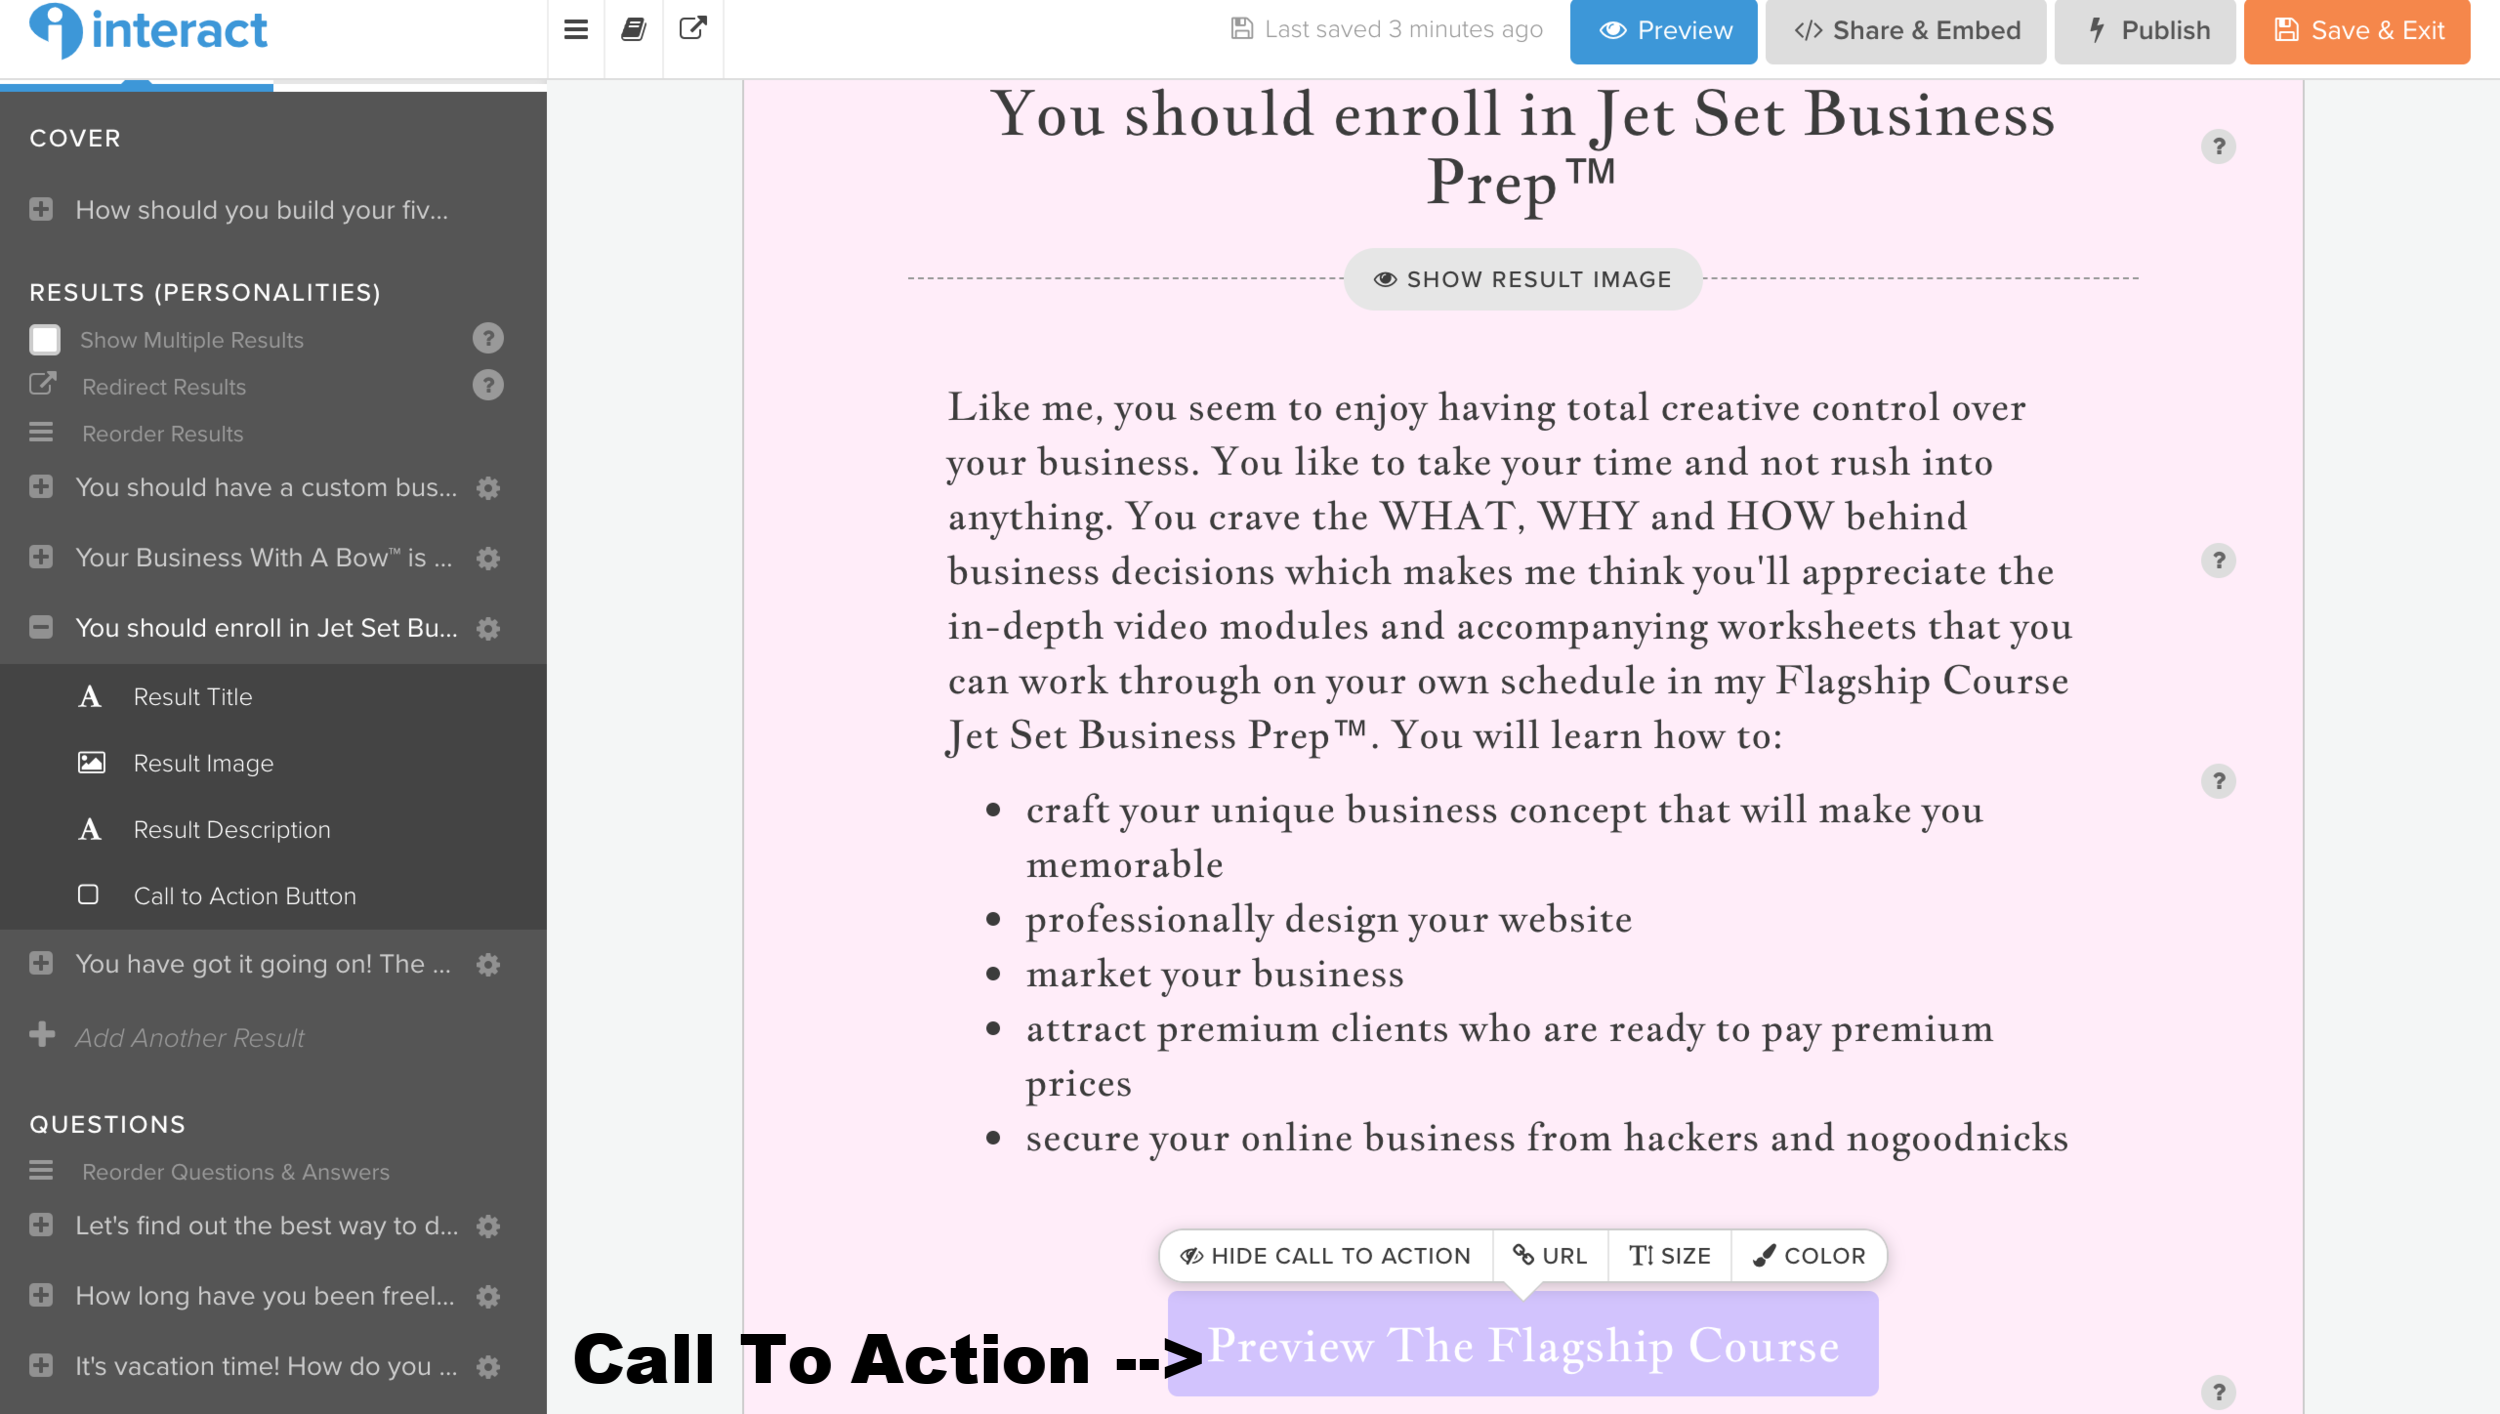 interact-quiz-call-to-action